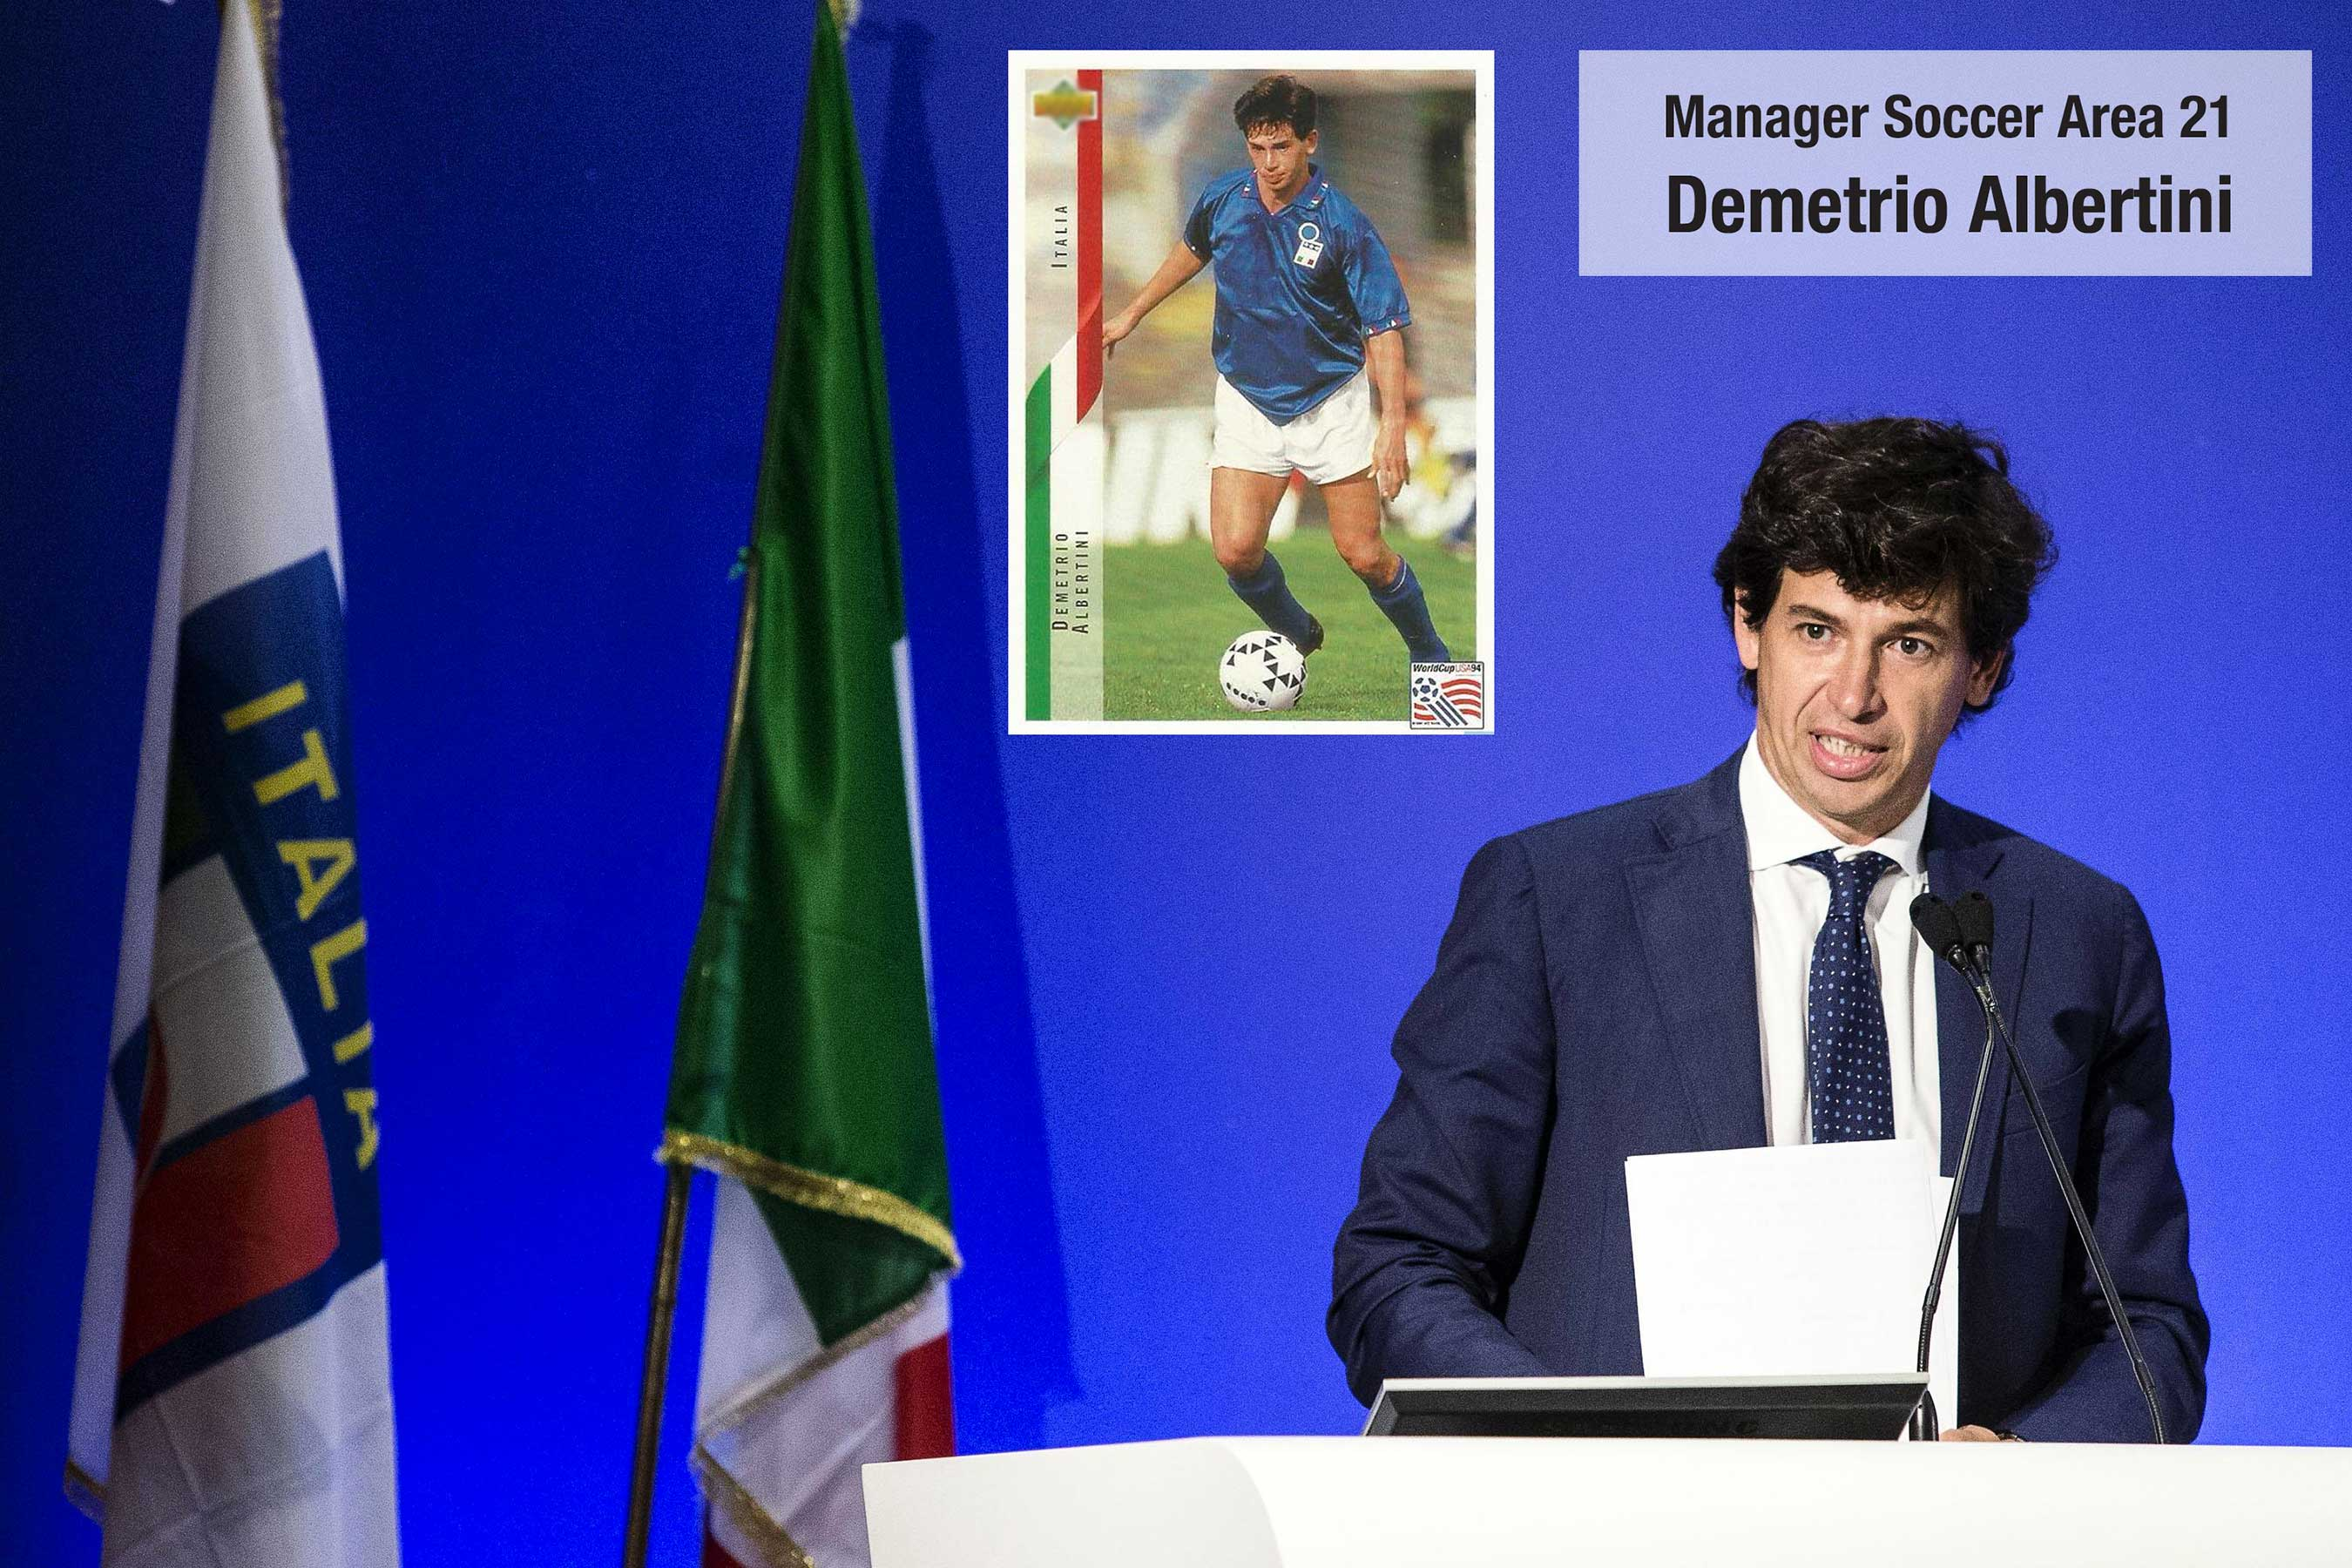 Demetrio Albertini the unforgettable champion from AC Milan and the Italian national team vice champions on the USA World Cup in 1994. now a successful manager who has already served as Vice President of the Italian Soccer Federation.